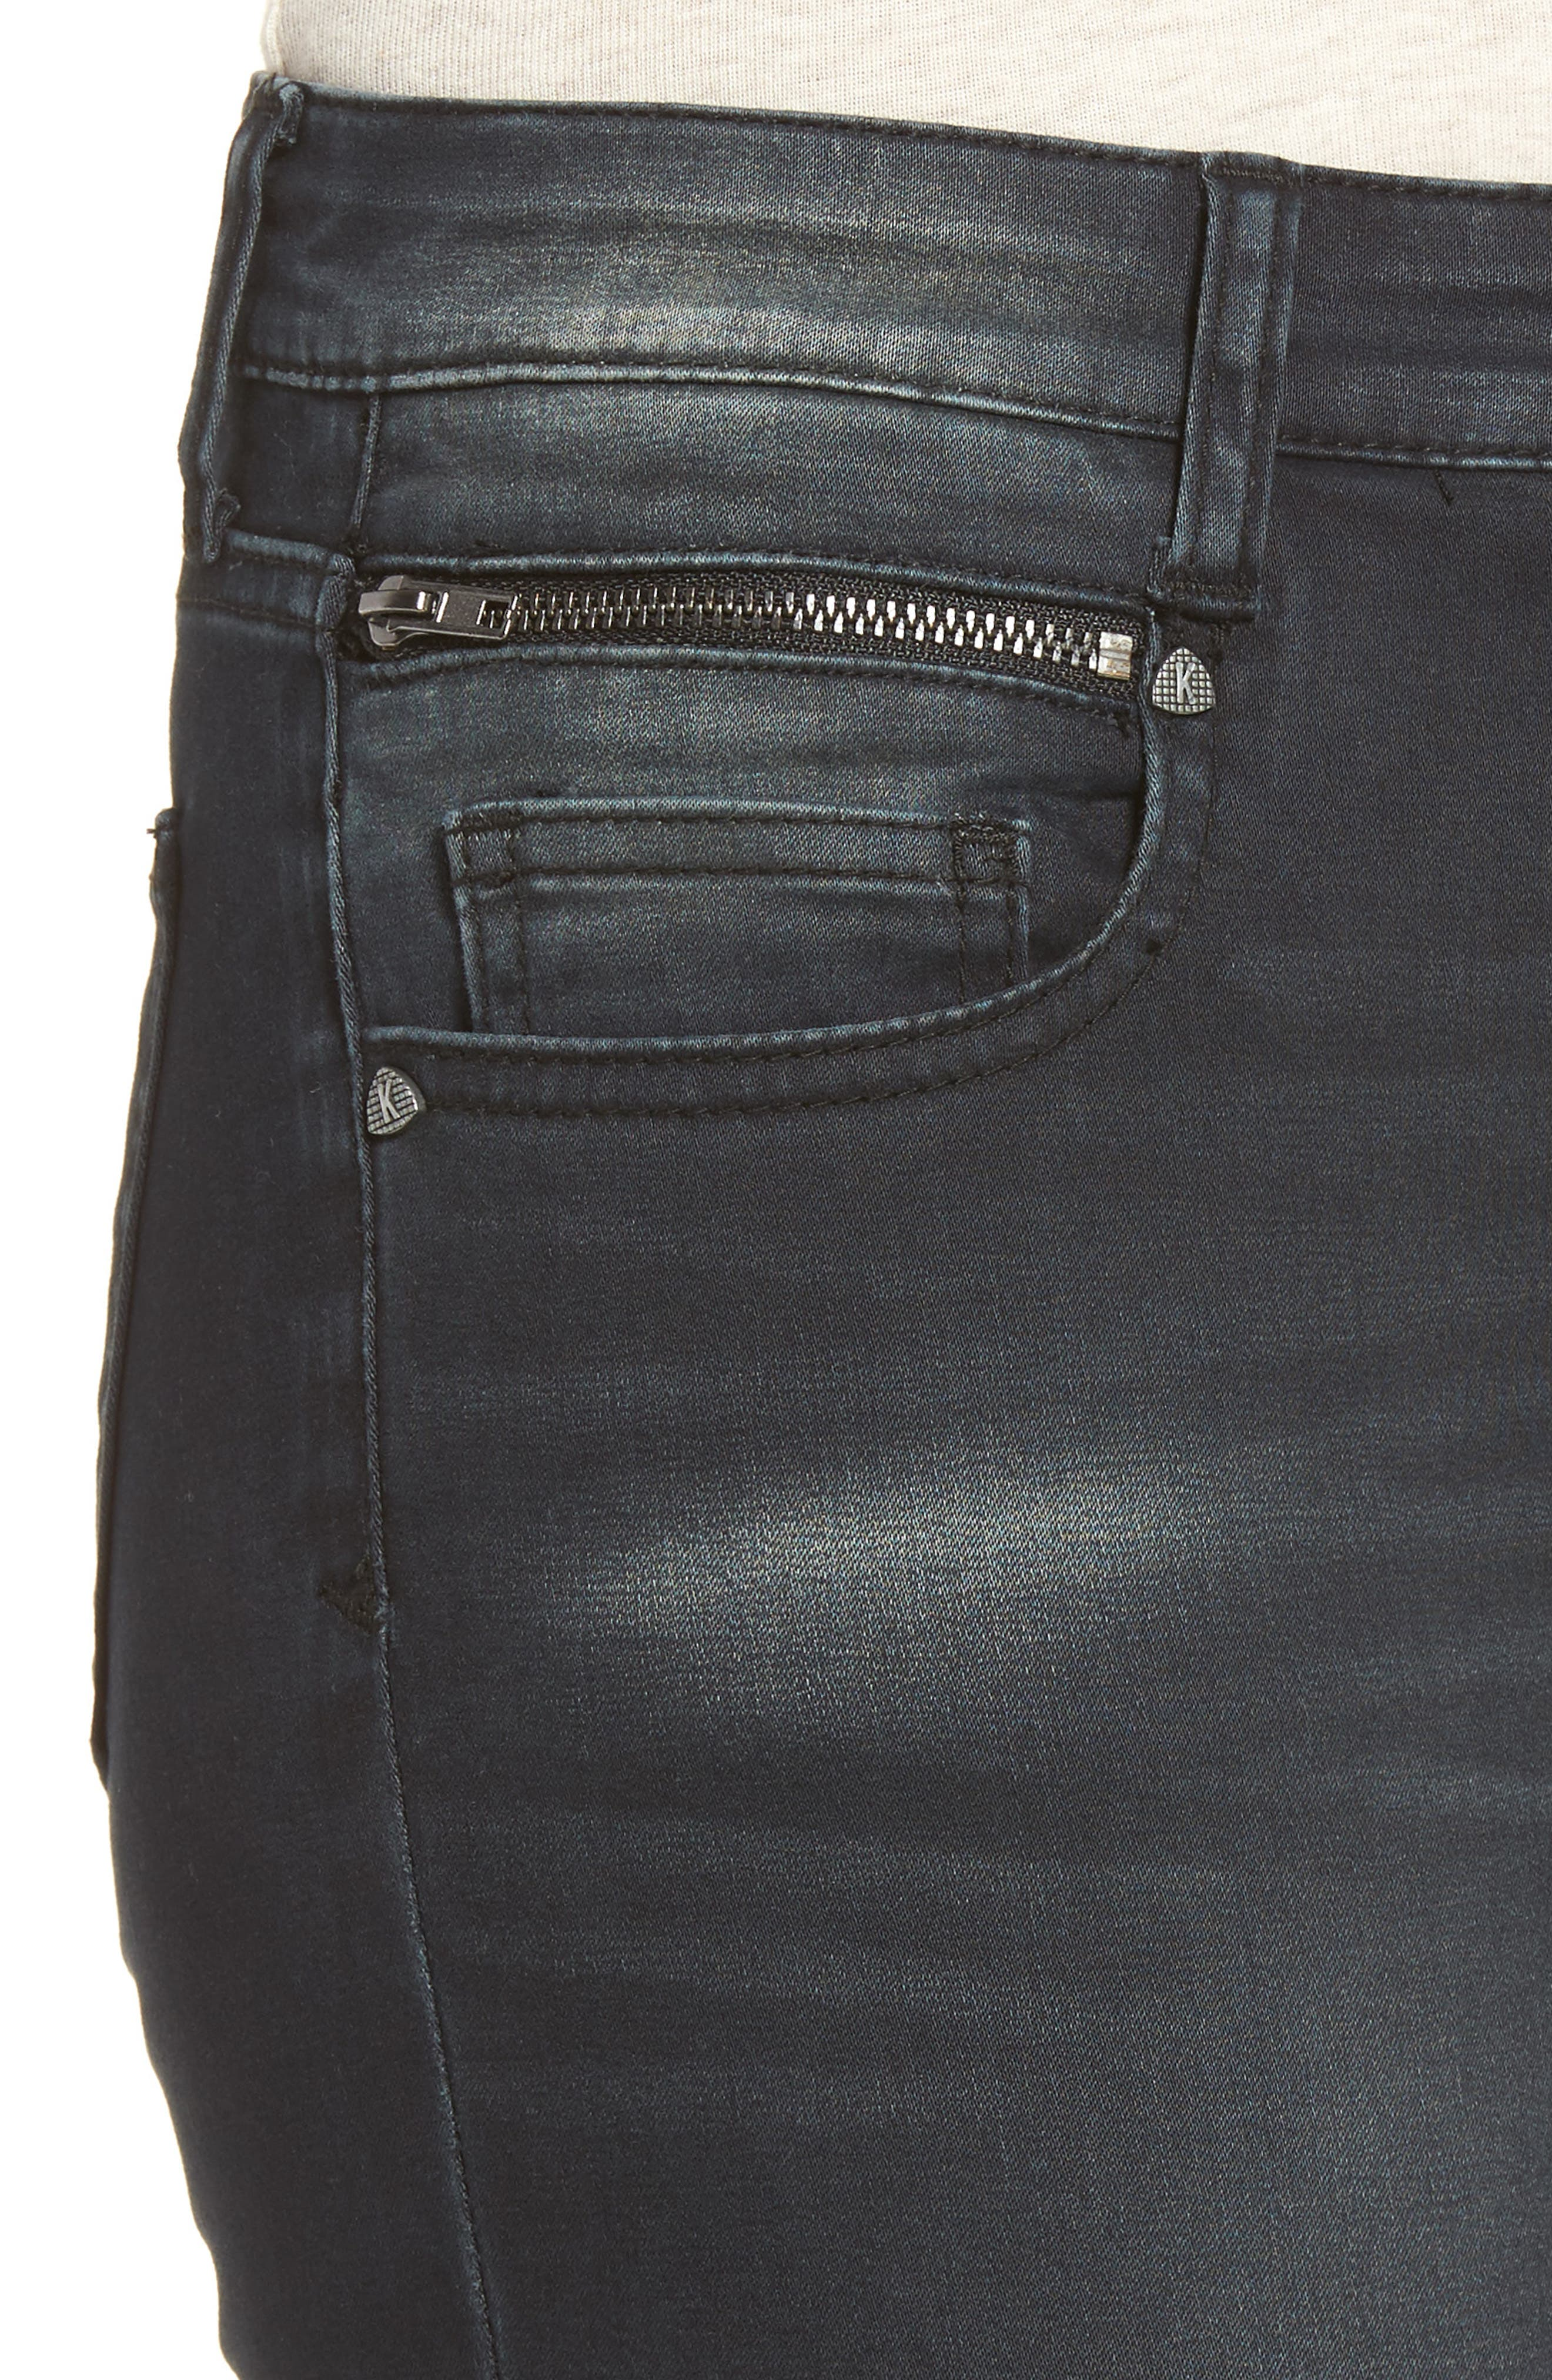 Reese Skinny Ankle Jeans,                             Alternate thumbnail 4, color,                             431